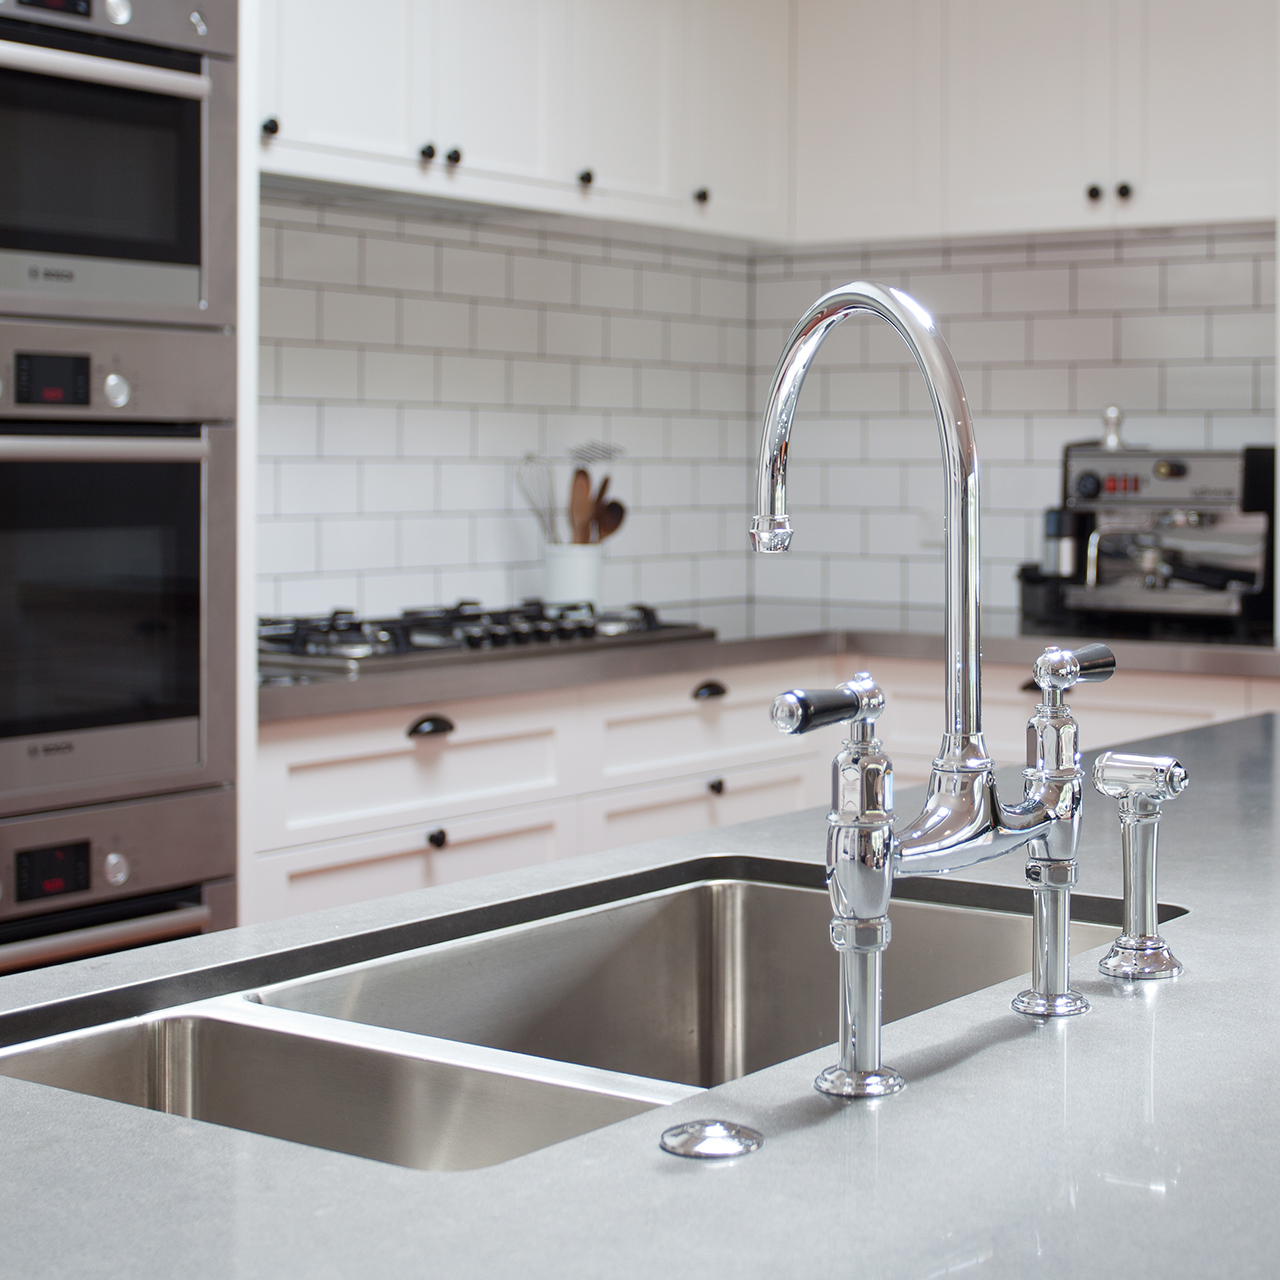 Perrin & Rowe IONIAN 4173 Tap with Rinse - Sinks-Taps.com